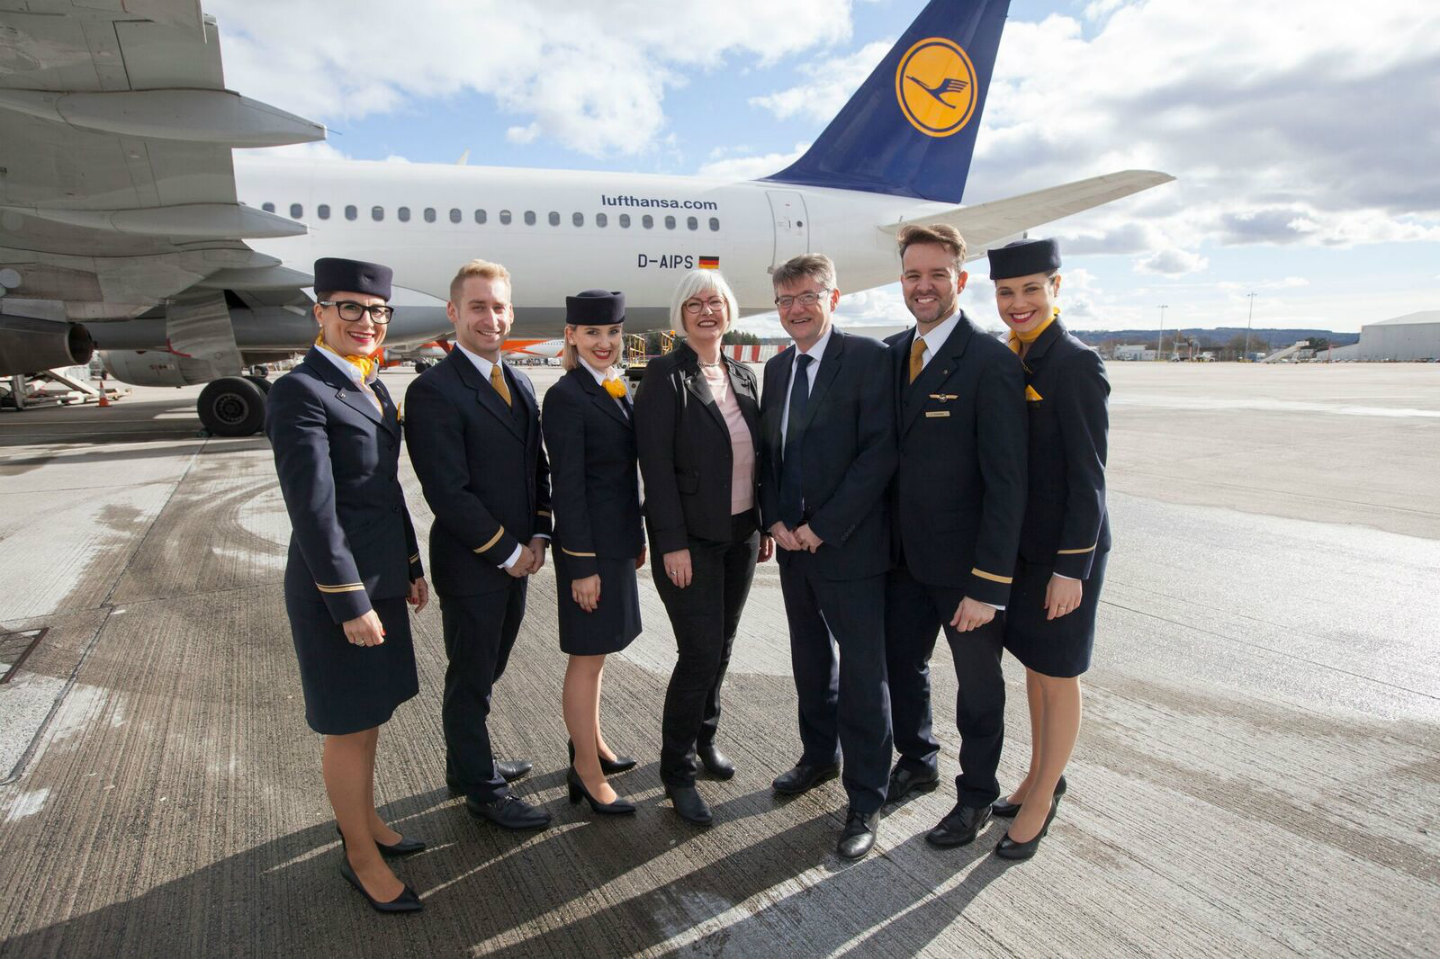 lufthansa has further expanded